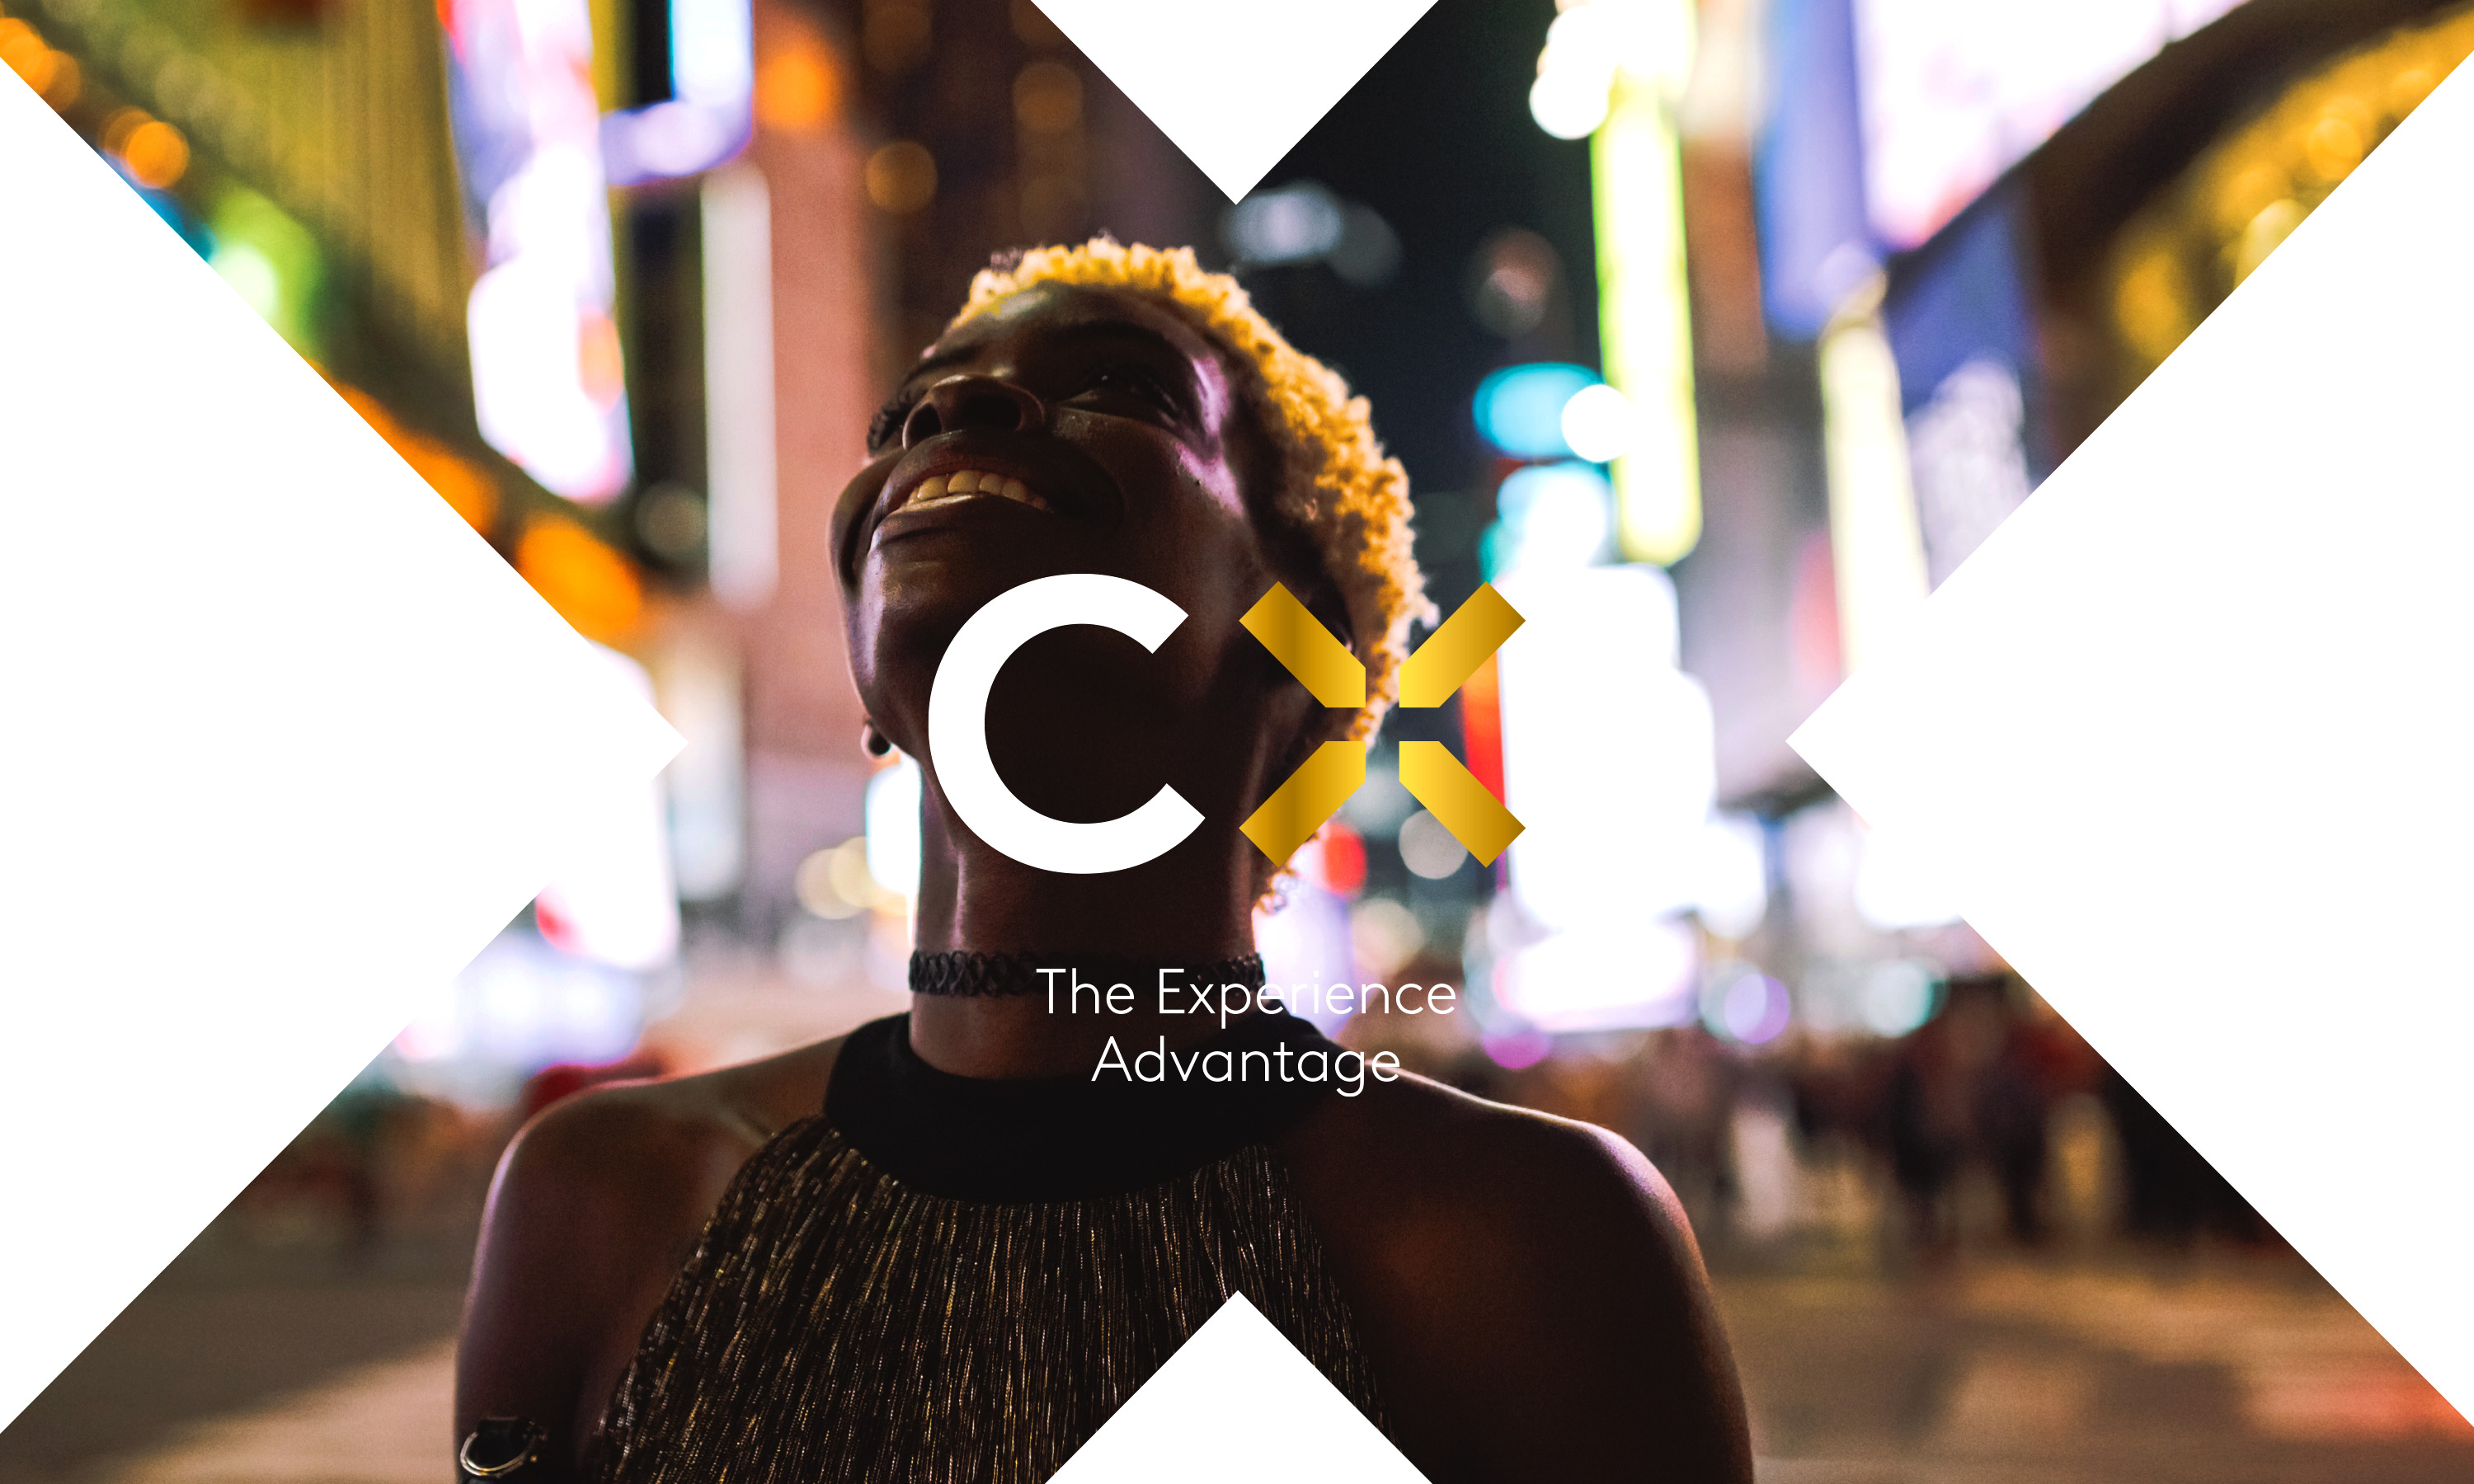 Branding by Neon Kantar CX+ brand mark with strapline over image NYC image with girl looking up